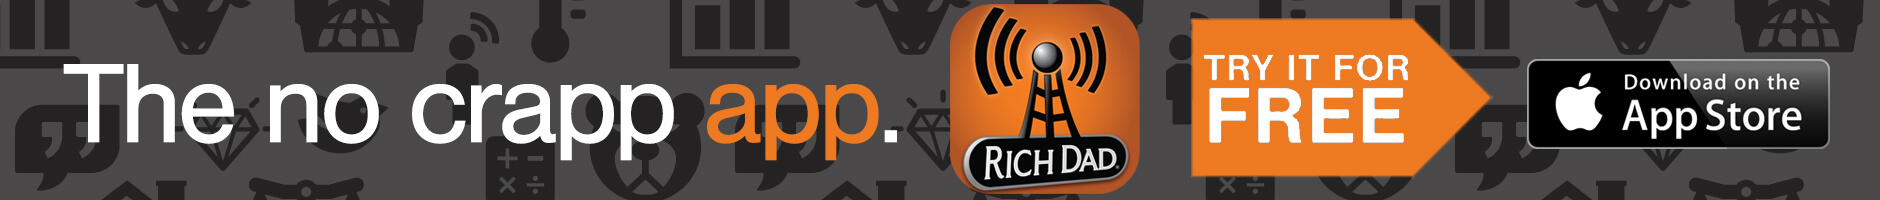 Rich Dad Radio Show App - Try it for FREE